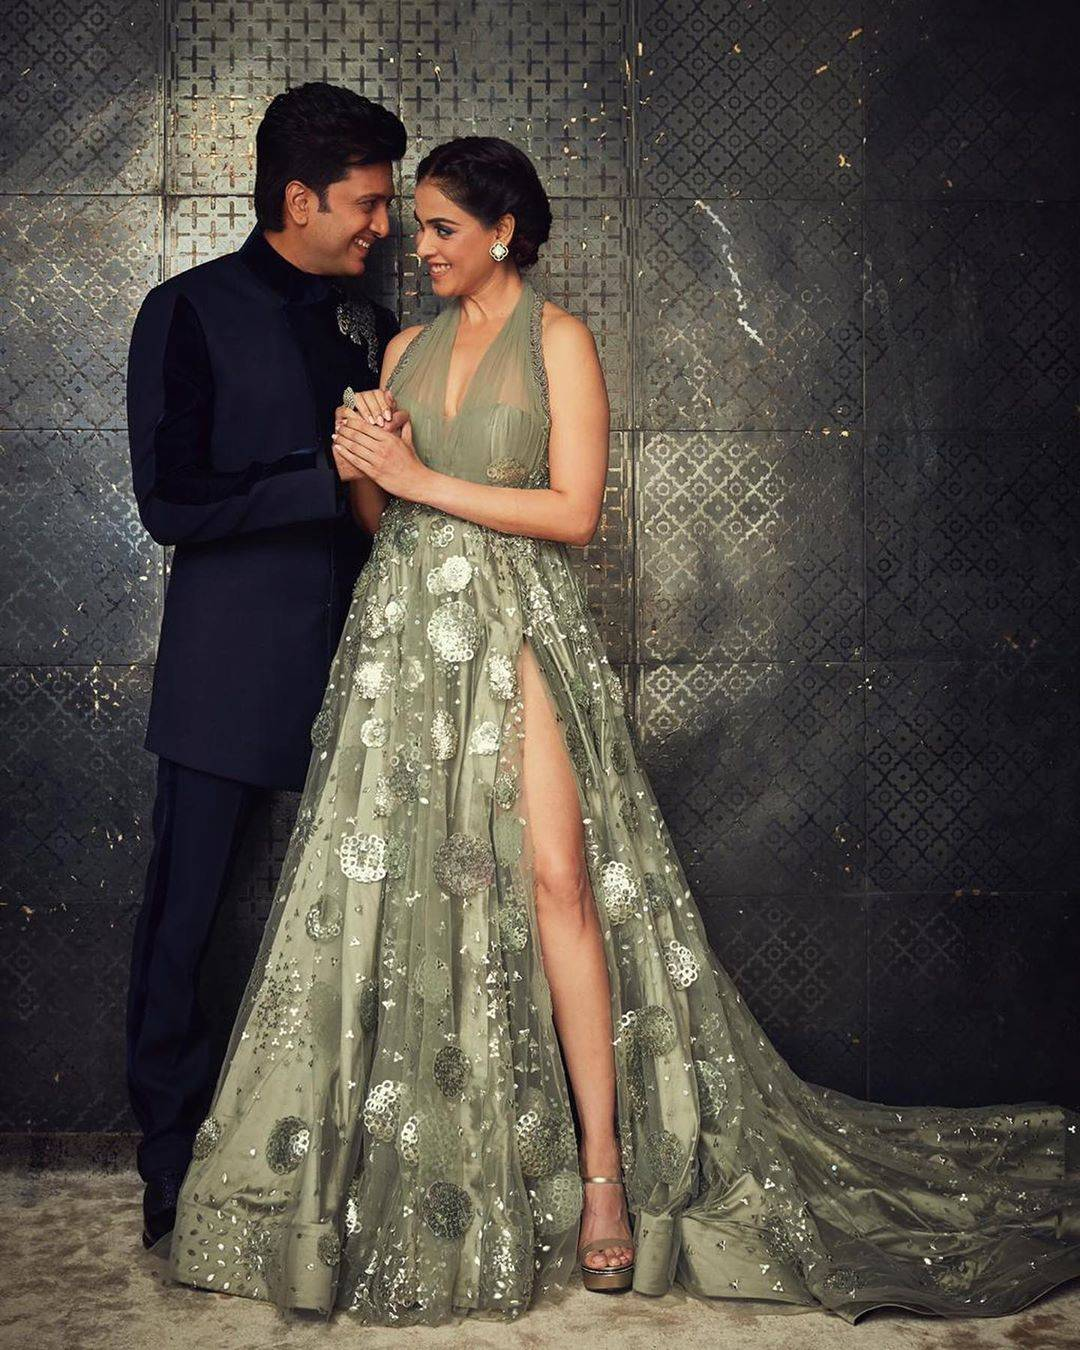 Riteish Deshmukh and Genelia D'Souza shell out major couple goals; view  pics | Hindi Movie News - Times of India